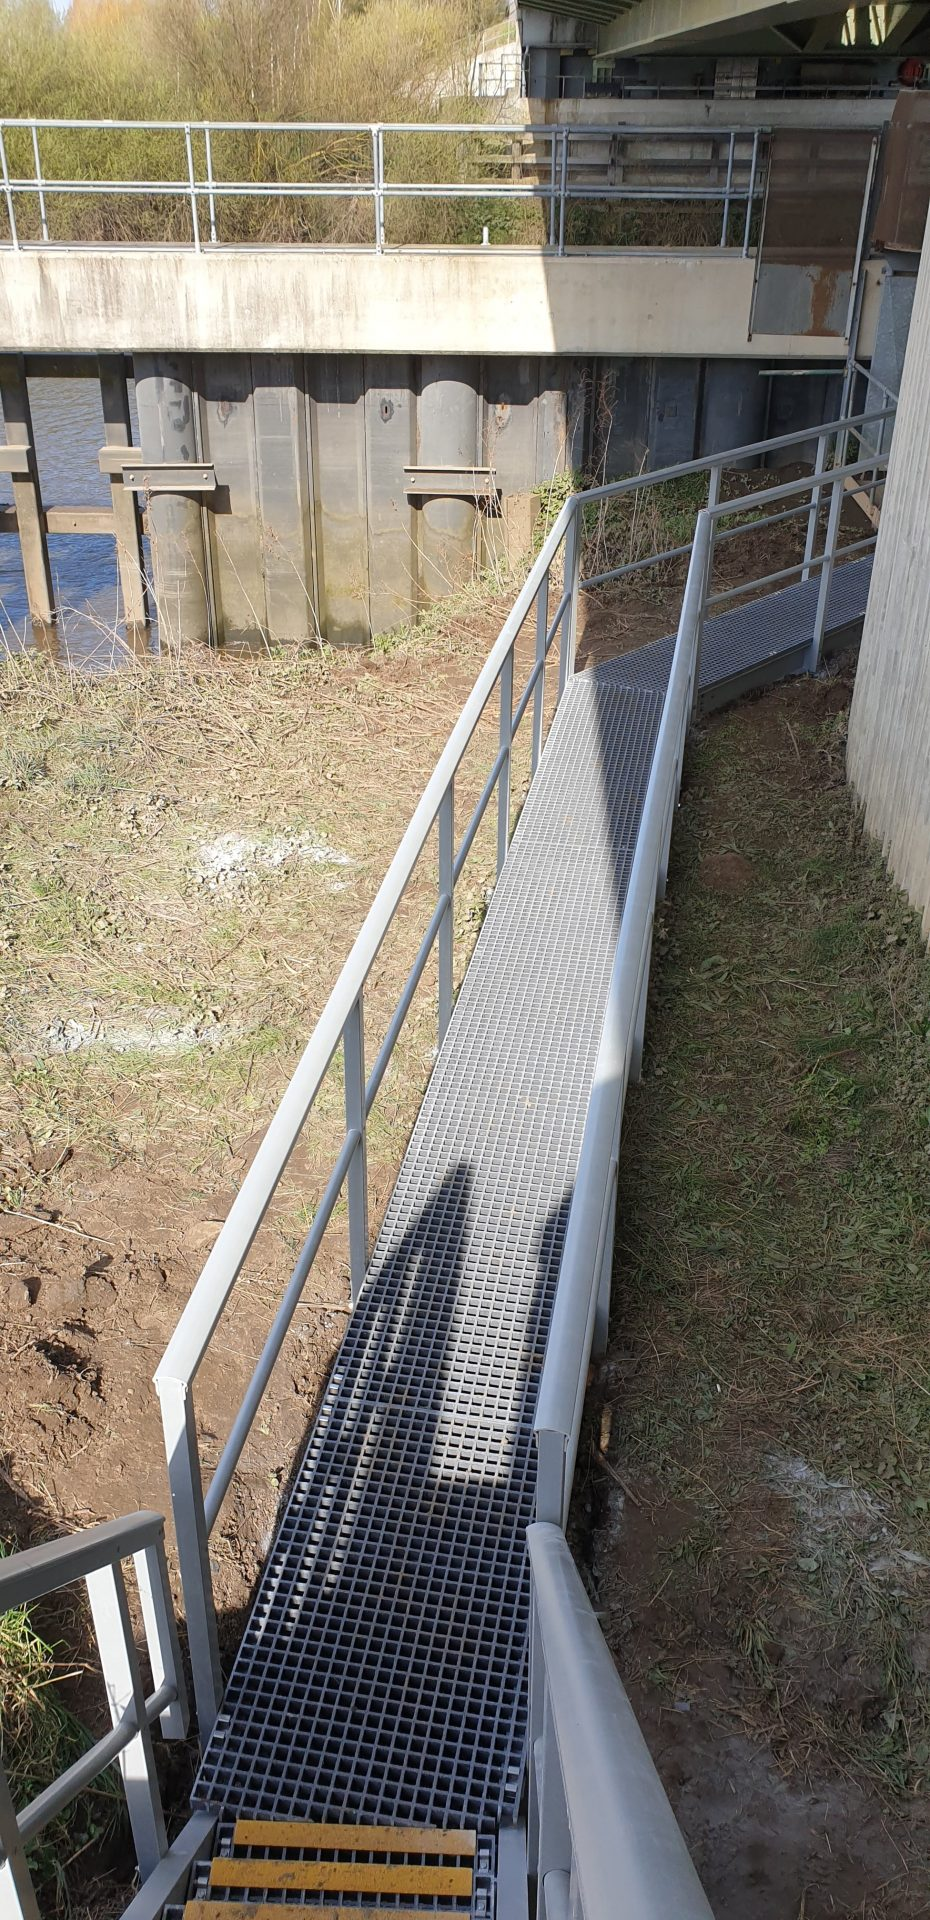 GRP raised access walkway with guardrail road bridge maintenence access aerial view